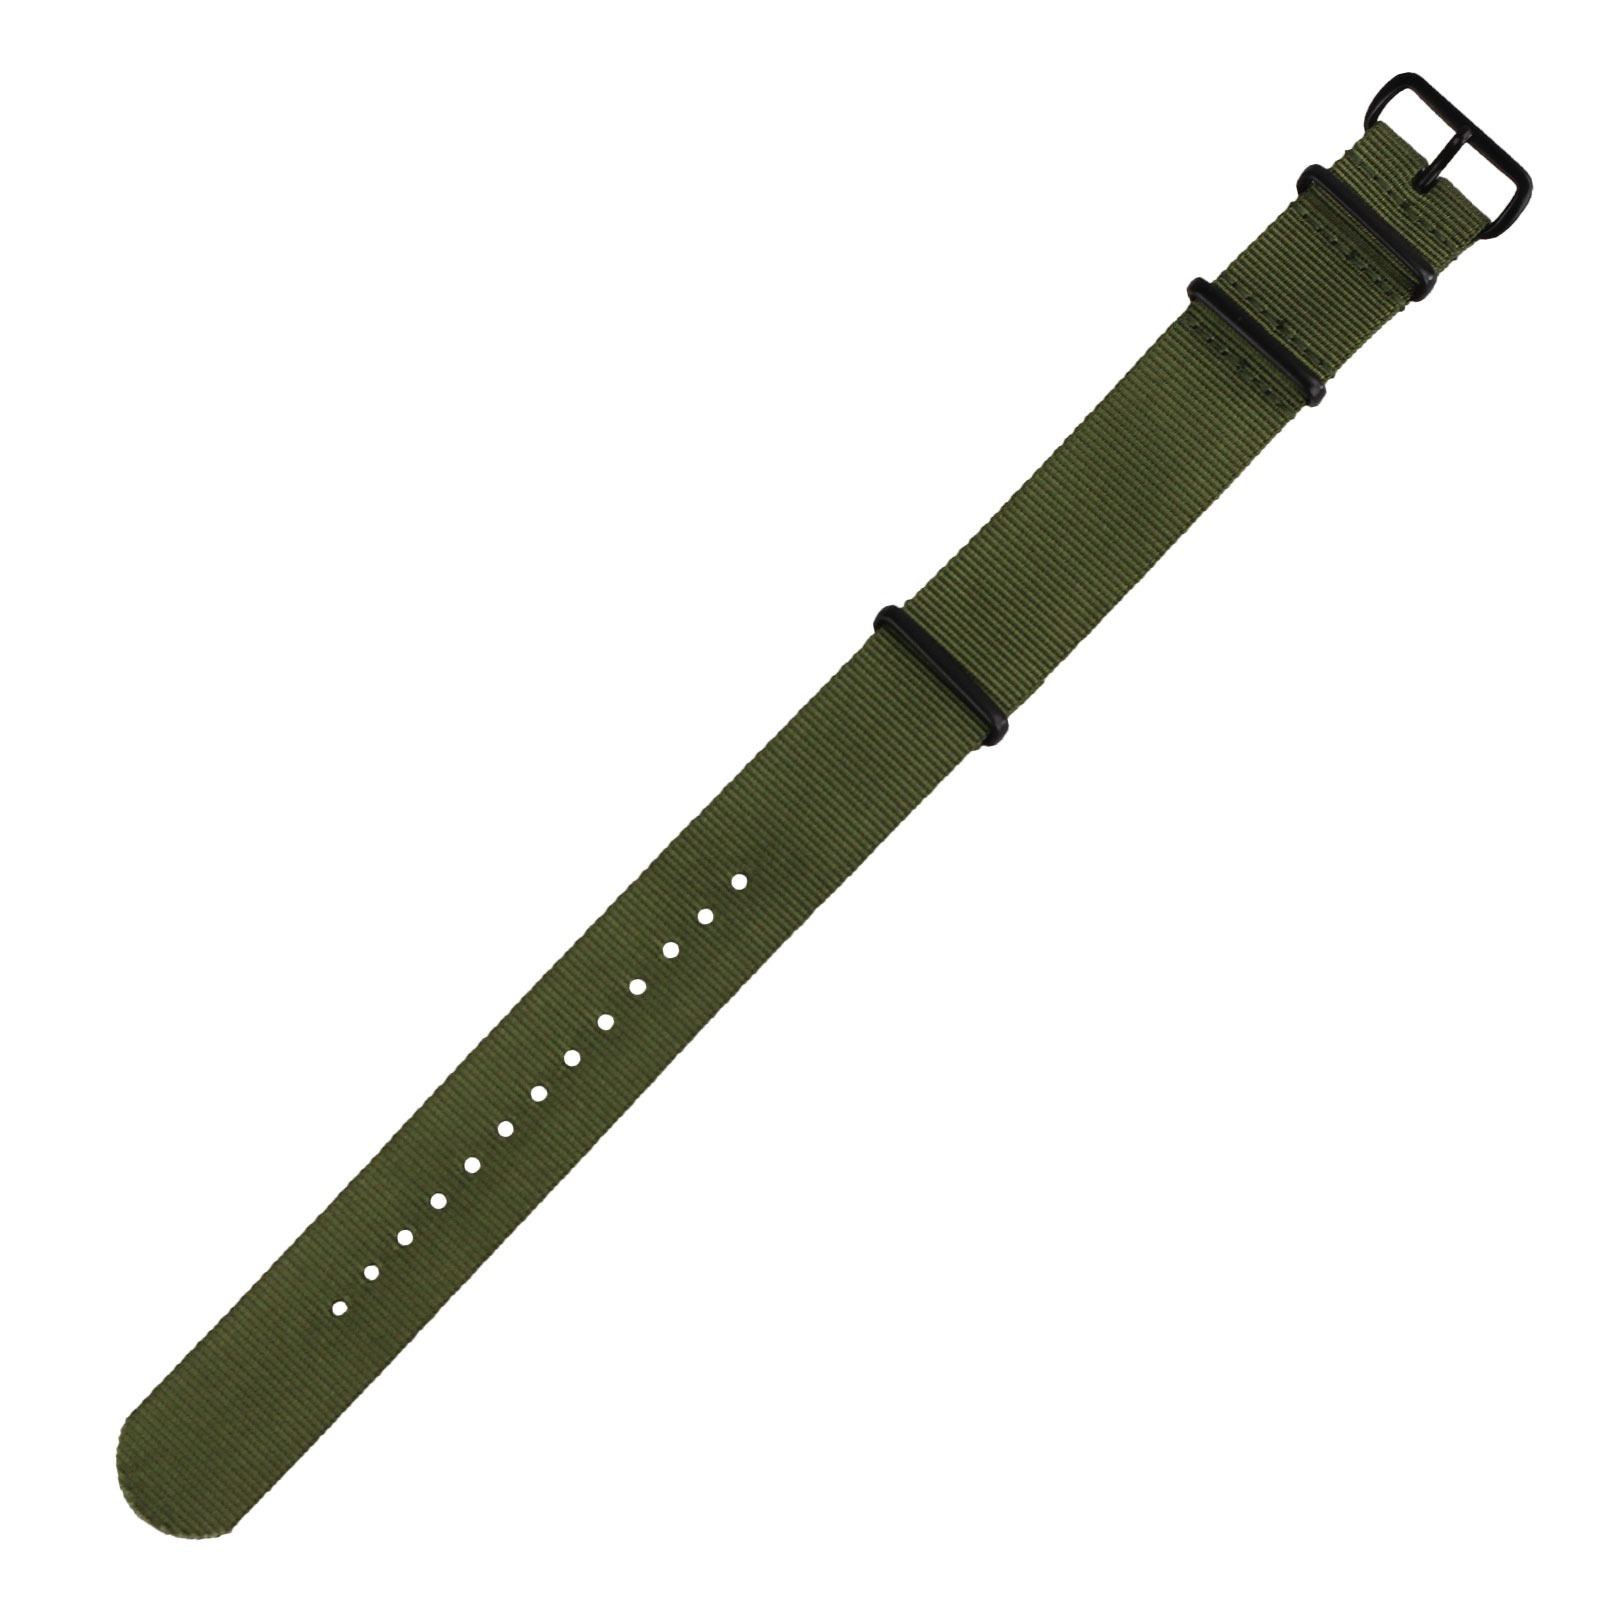 INFANTRY BLACK / GREEN 20mm / 22mm 4 Ring Military Nylon Watch Strap Band 23cm